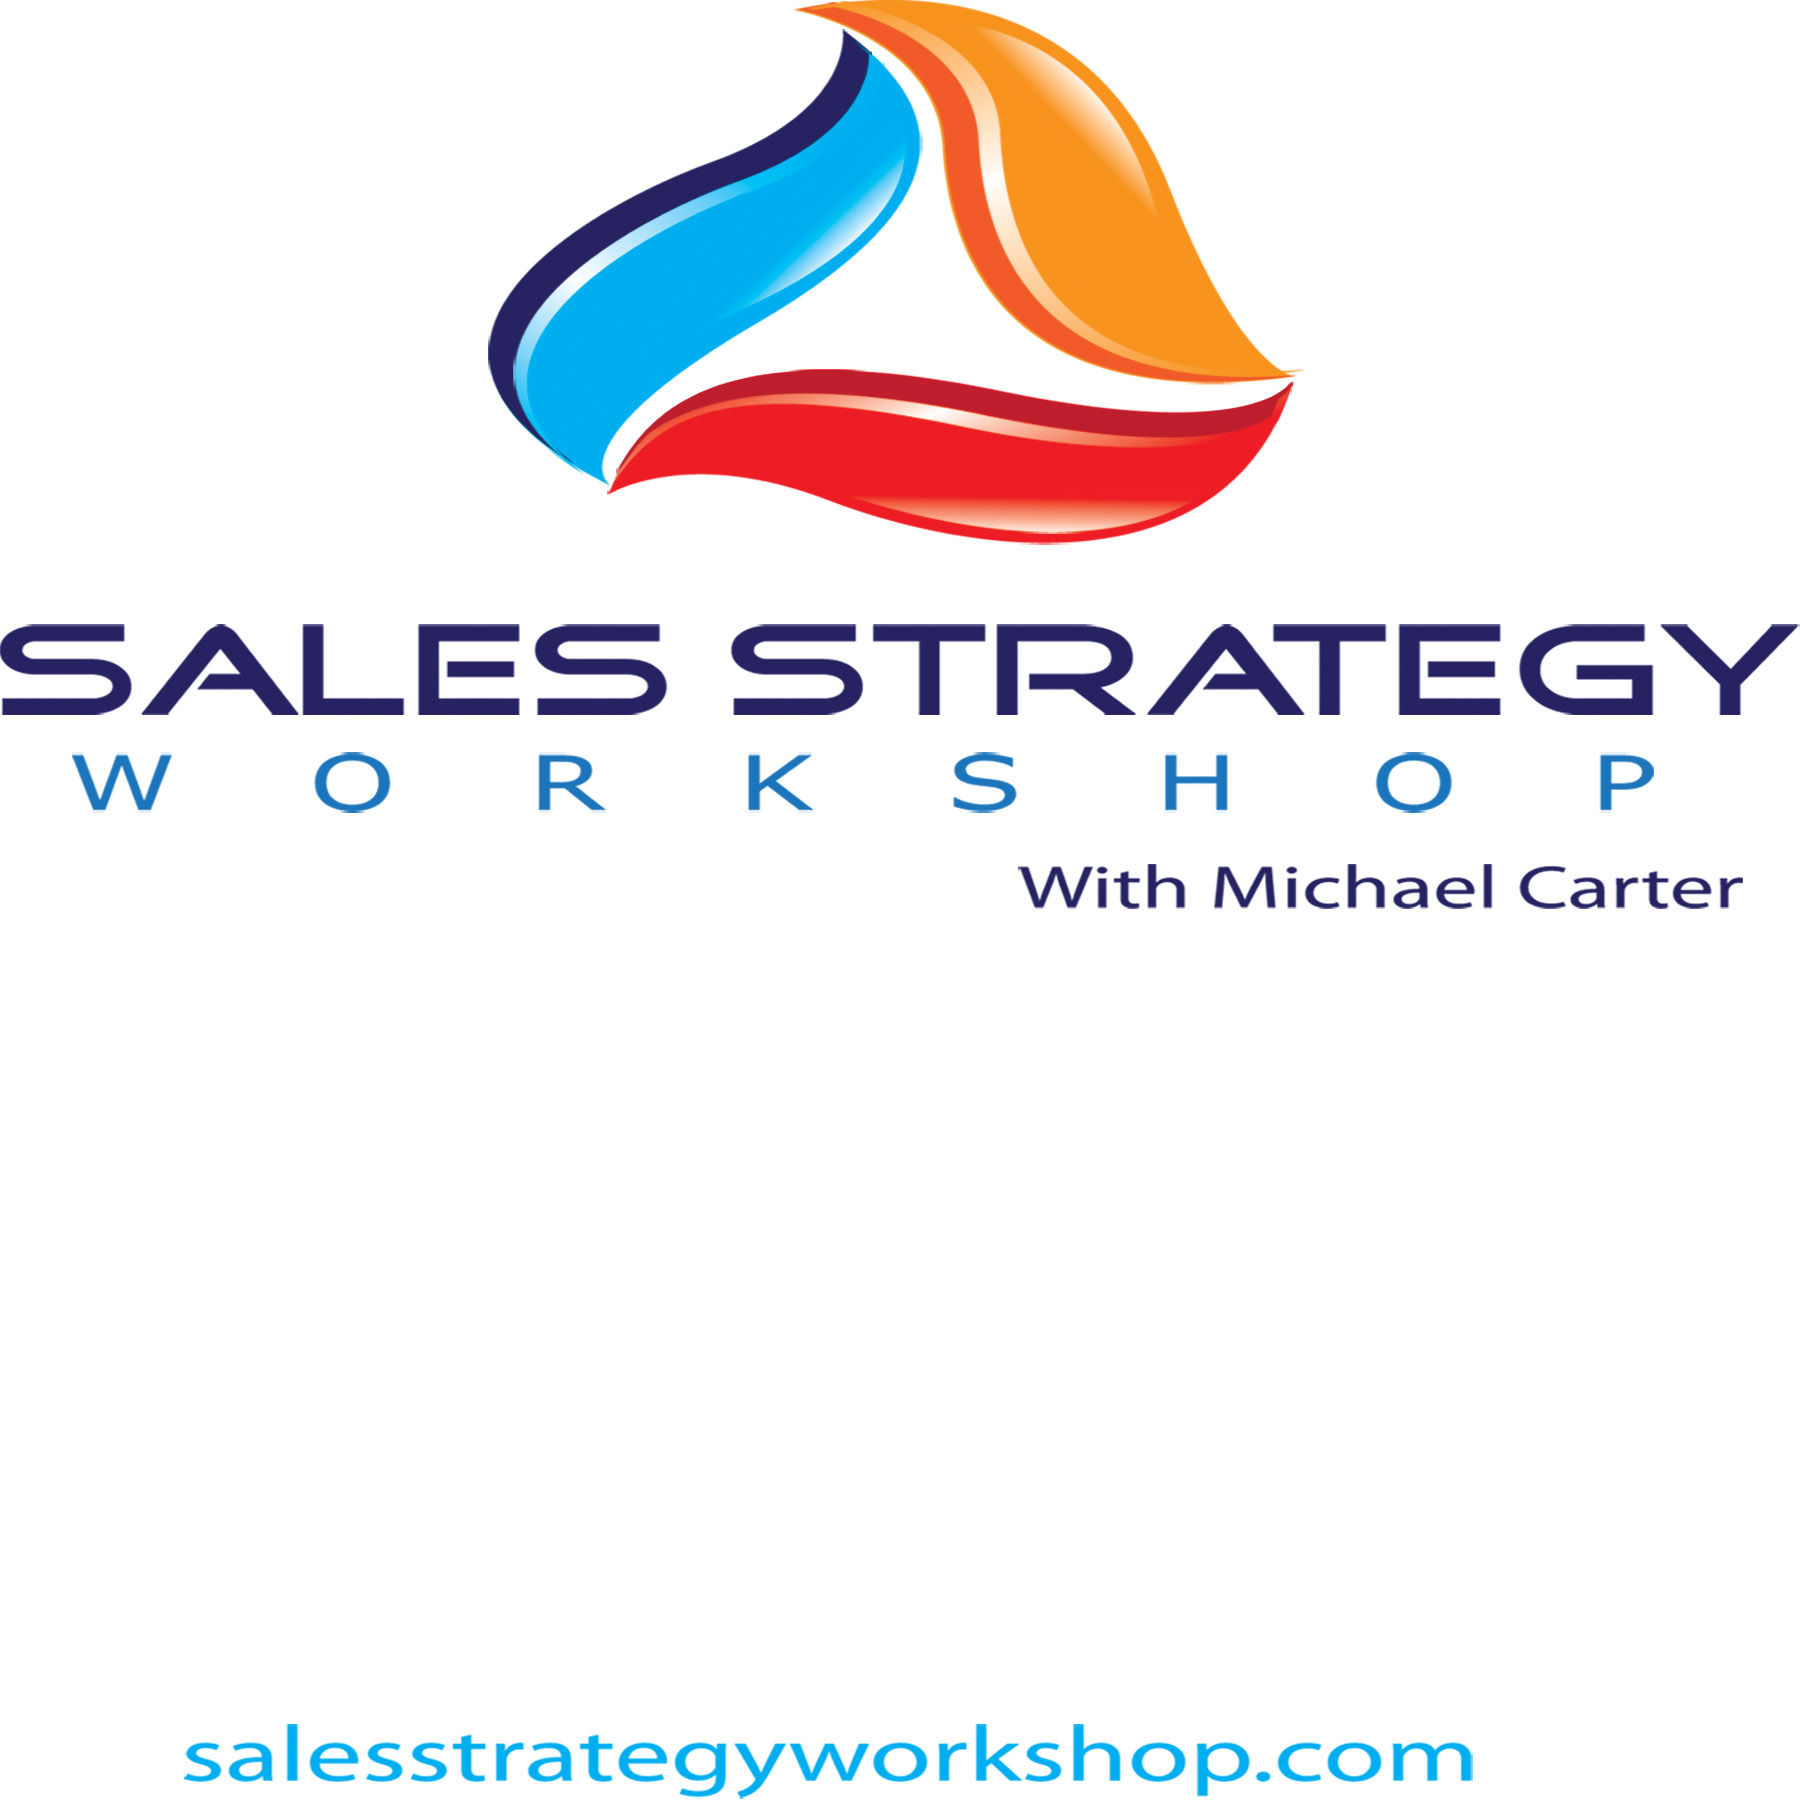 Sales Strategy Workshop sales training podcast and blog